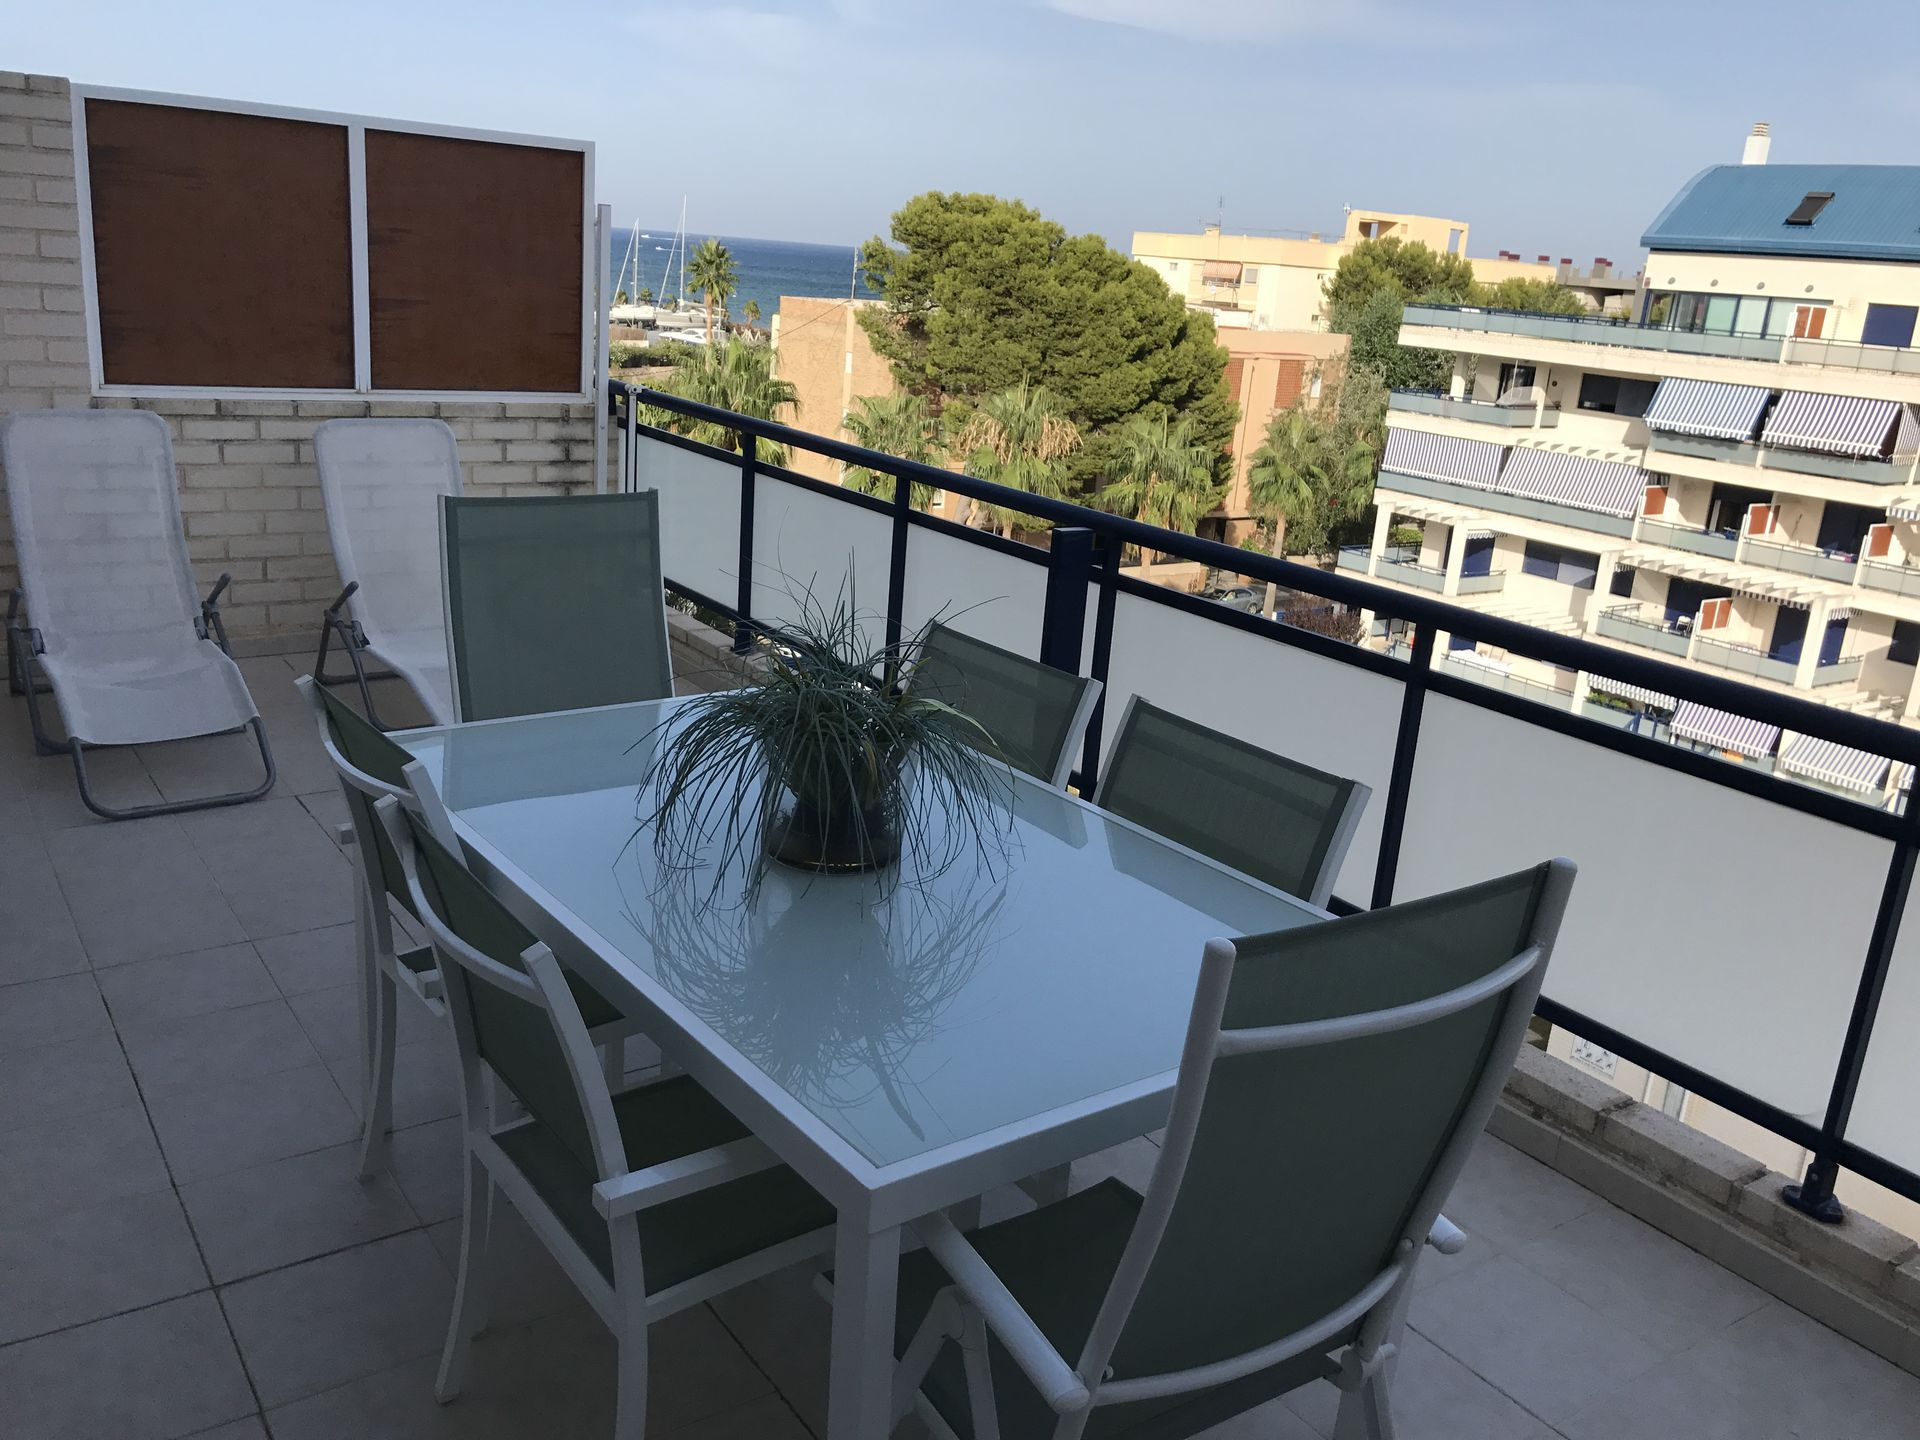 Denia (Alicante) Seaside 4 bdr. apartment. Booked for summer 2018 ...